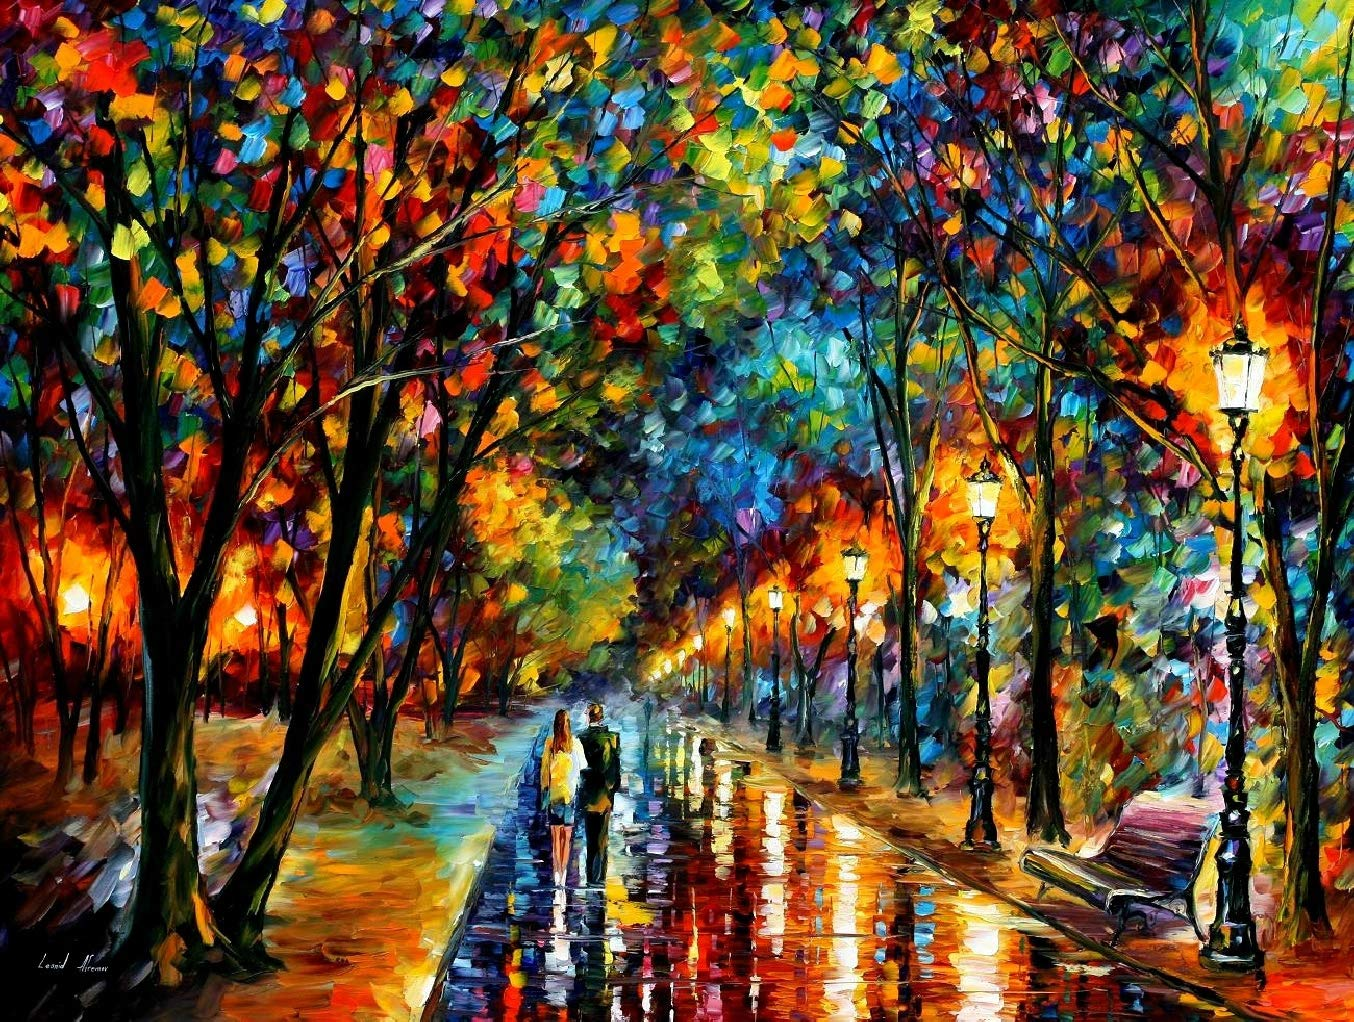 DIY Paint by Numbers Kit for Adults - Lights in Raining night   Paint by Numbers Landscape Scene Paintings Arts Craft for Home Wall Decor   Pre-Printed Art-Quality Canvas, 3 Brushes, 24 Acrylic Paints